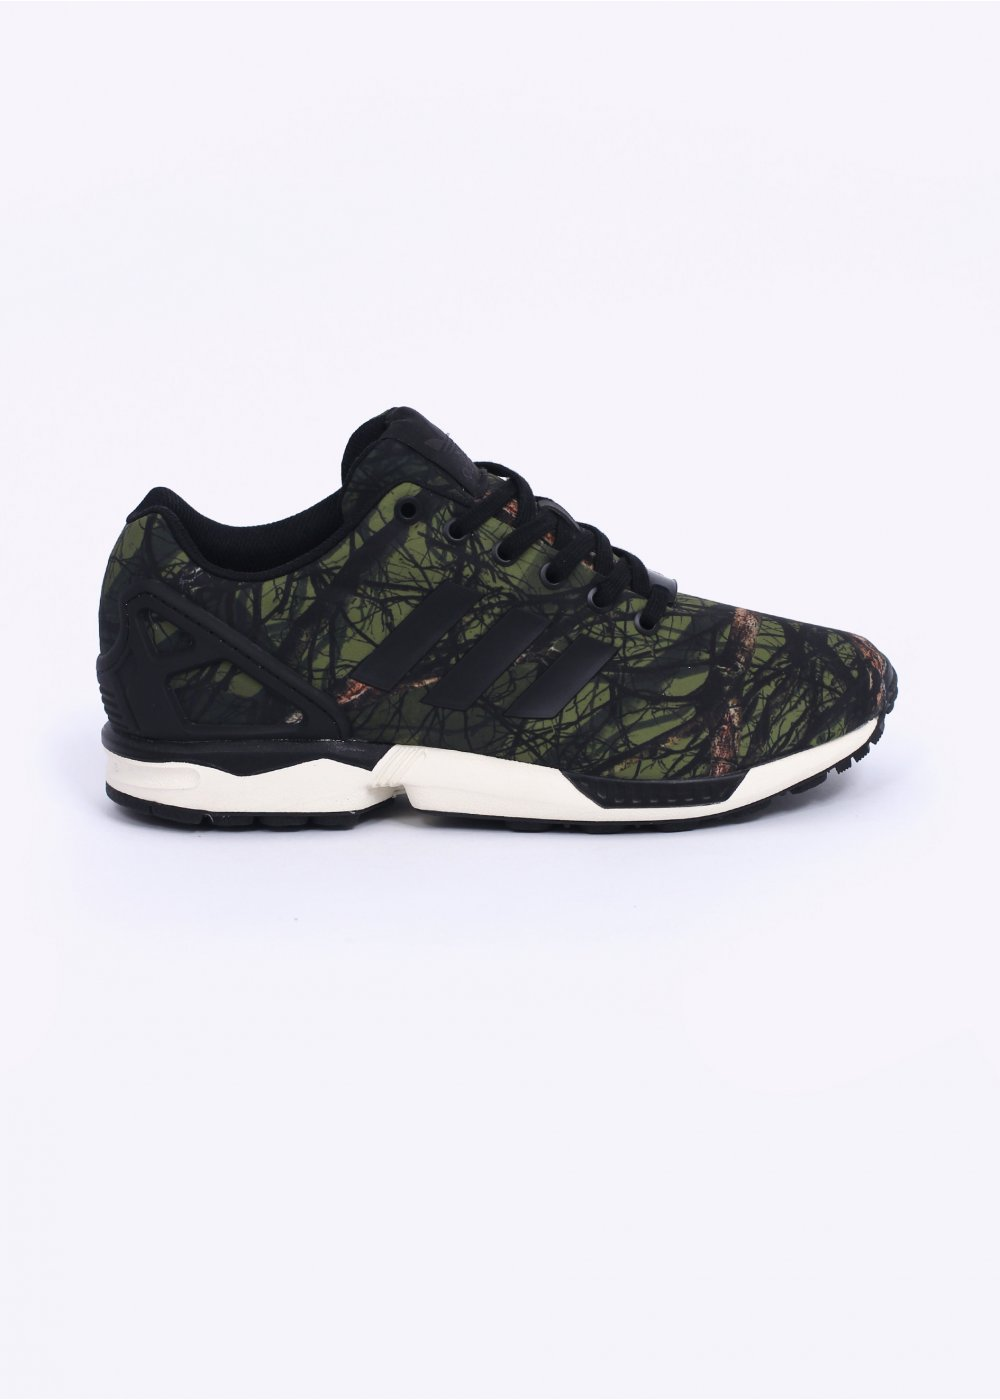 best service 37990 462bb adidas Originals Footwear ZX FLux - Green / Black